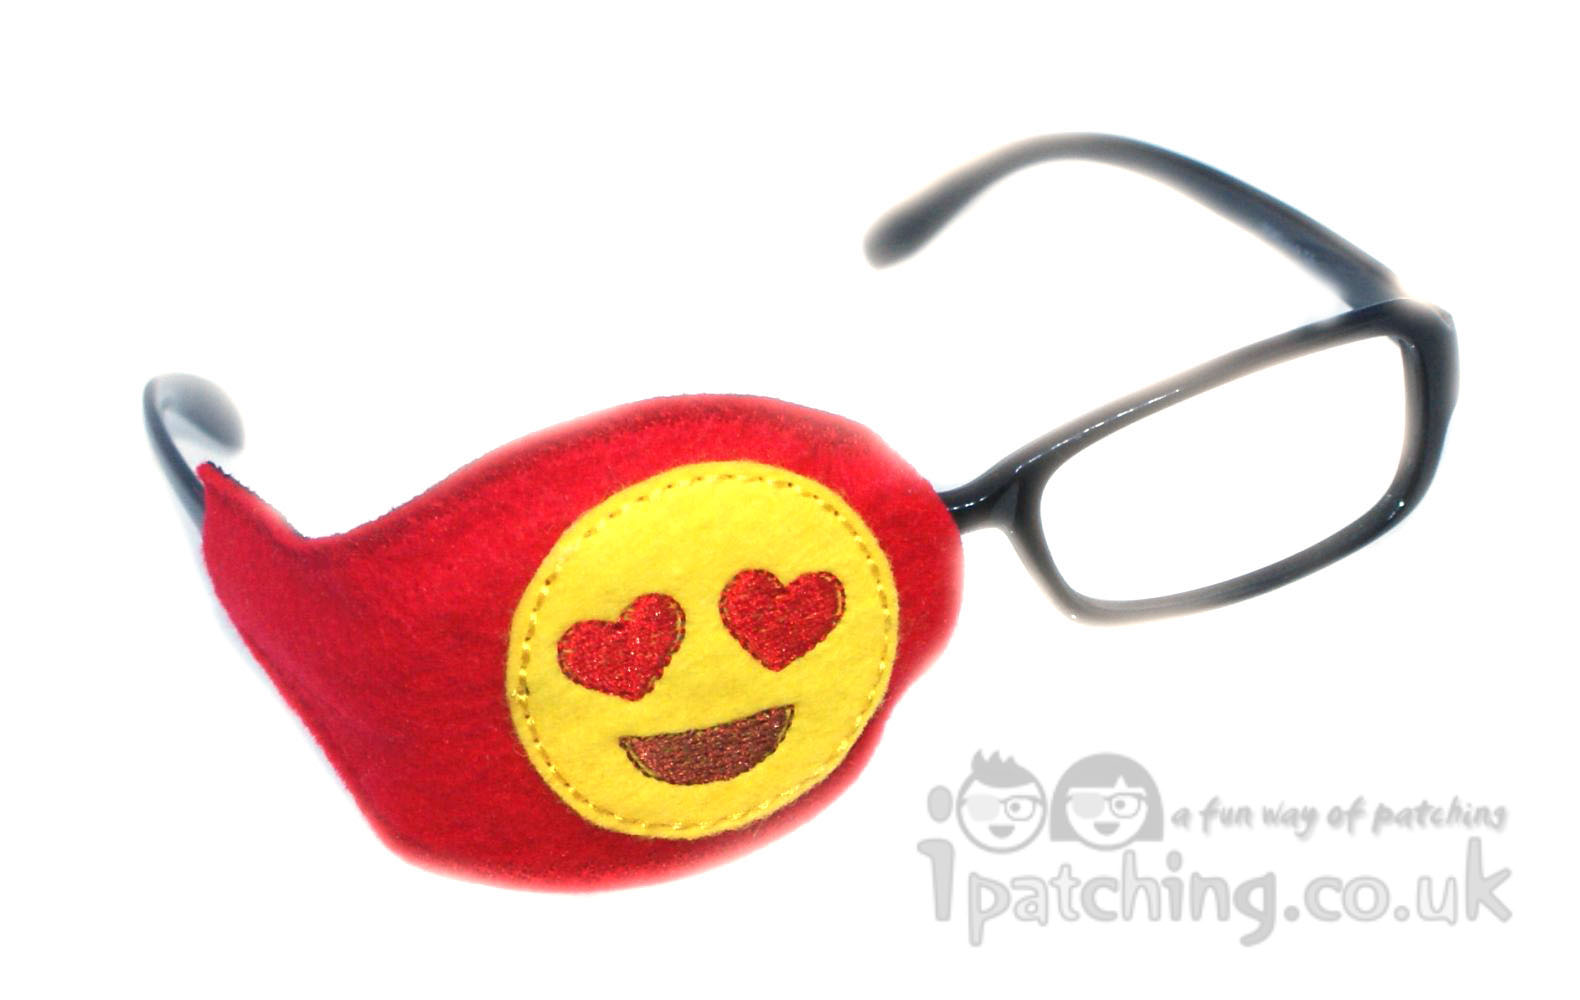 Kids And Adults Orthoptic Eye Patch For Amblyopia Lazy Eye